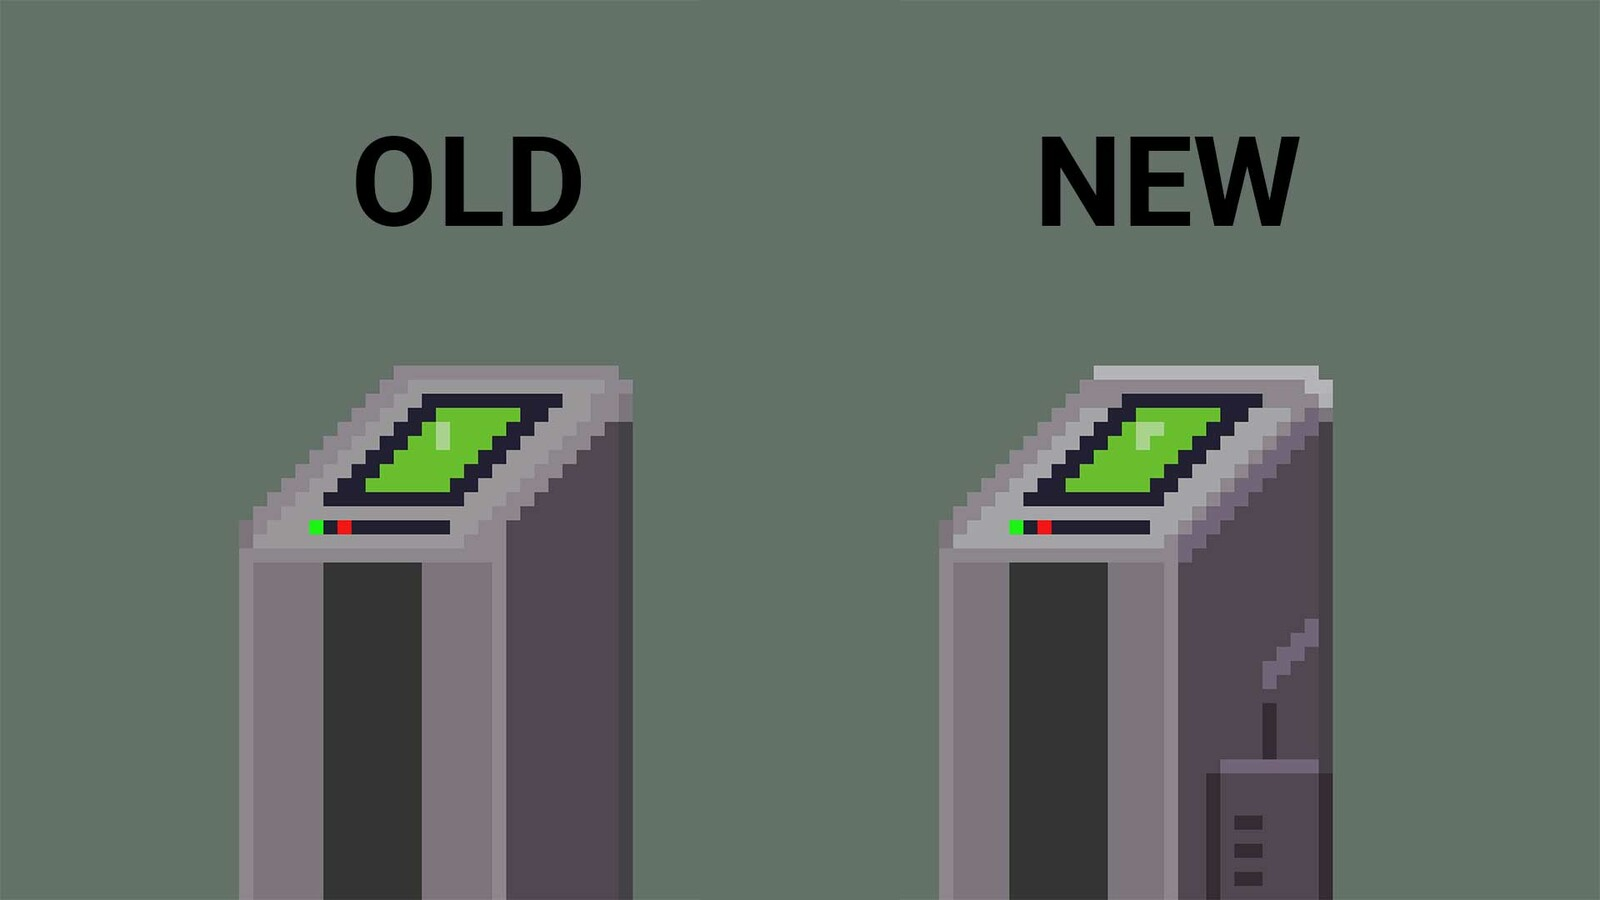 Here's an comparison of the two terminal variations. I was suggested by a friend to add the side panels to the new one to sale the metallic / machinery look. The old version also had not a lot of highlighting and some perspective issues which I fixed.